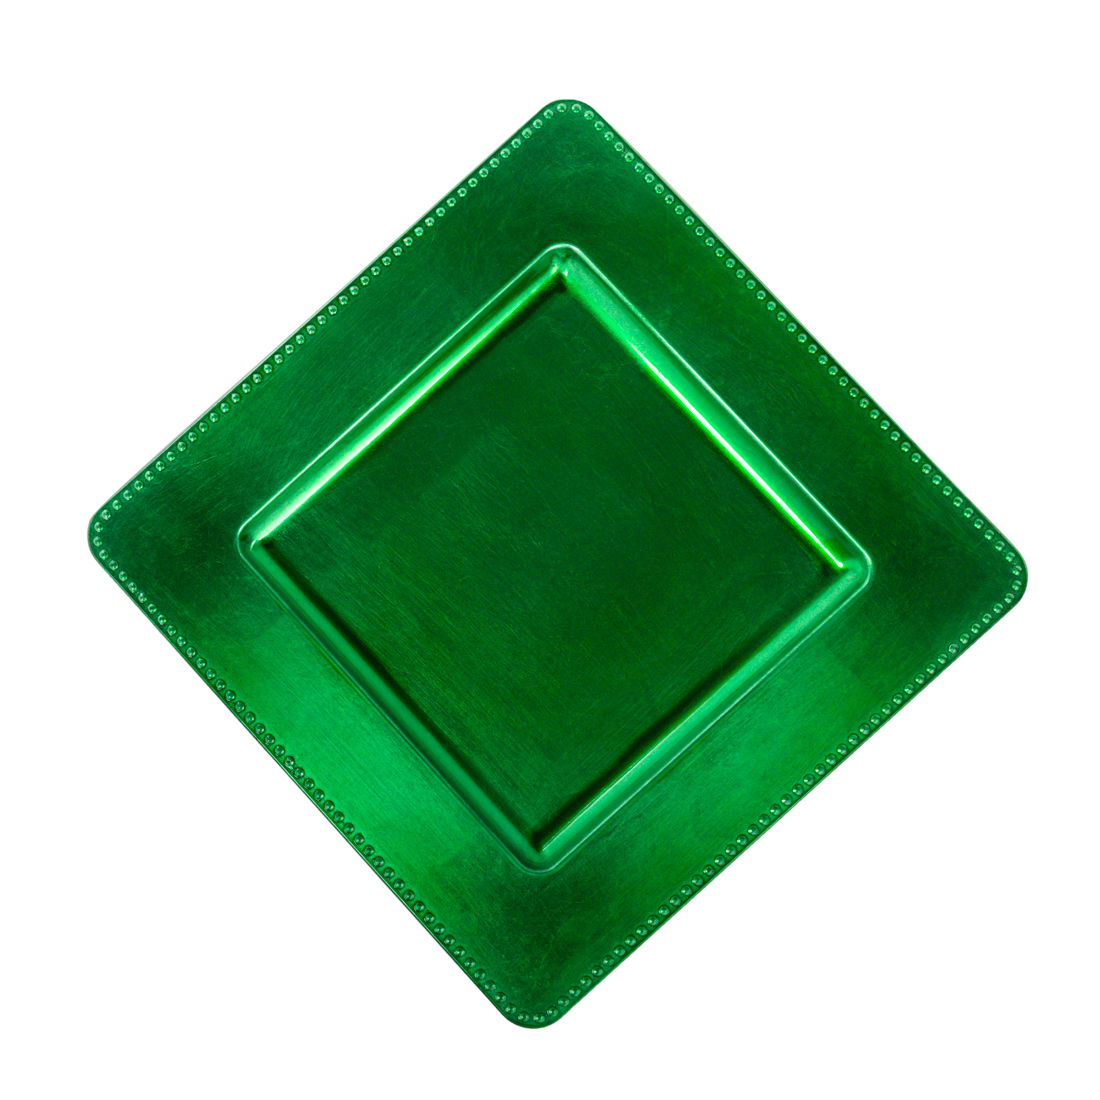 CHARGER_PLATES_GREEN_SQUARE_1